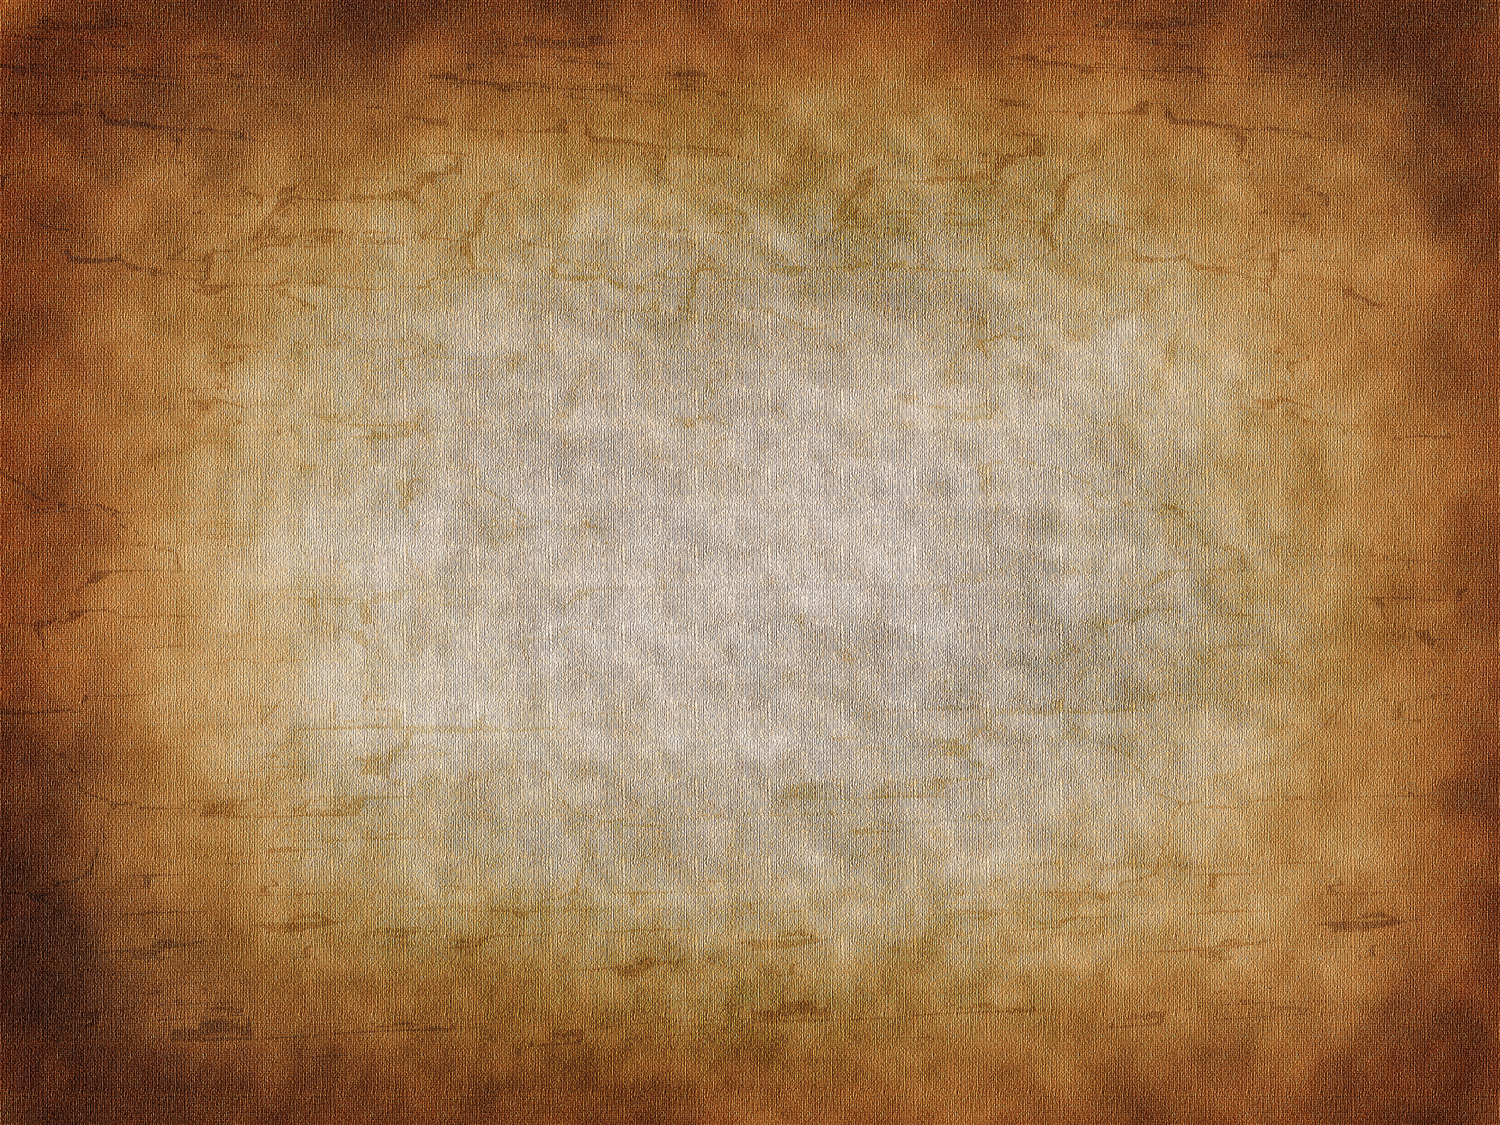 burnt grunge paper texture background with an Old West feel.